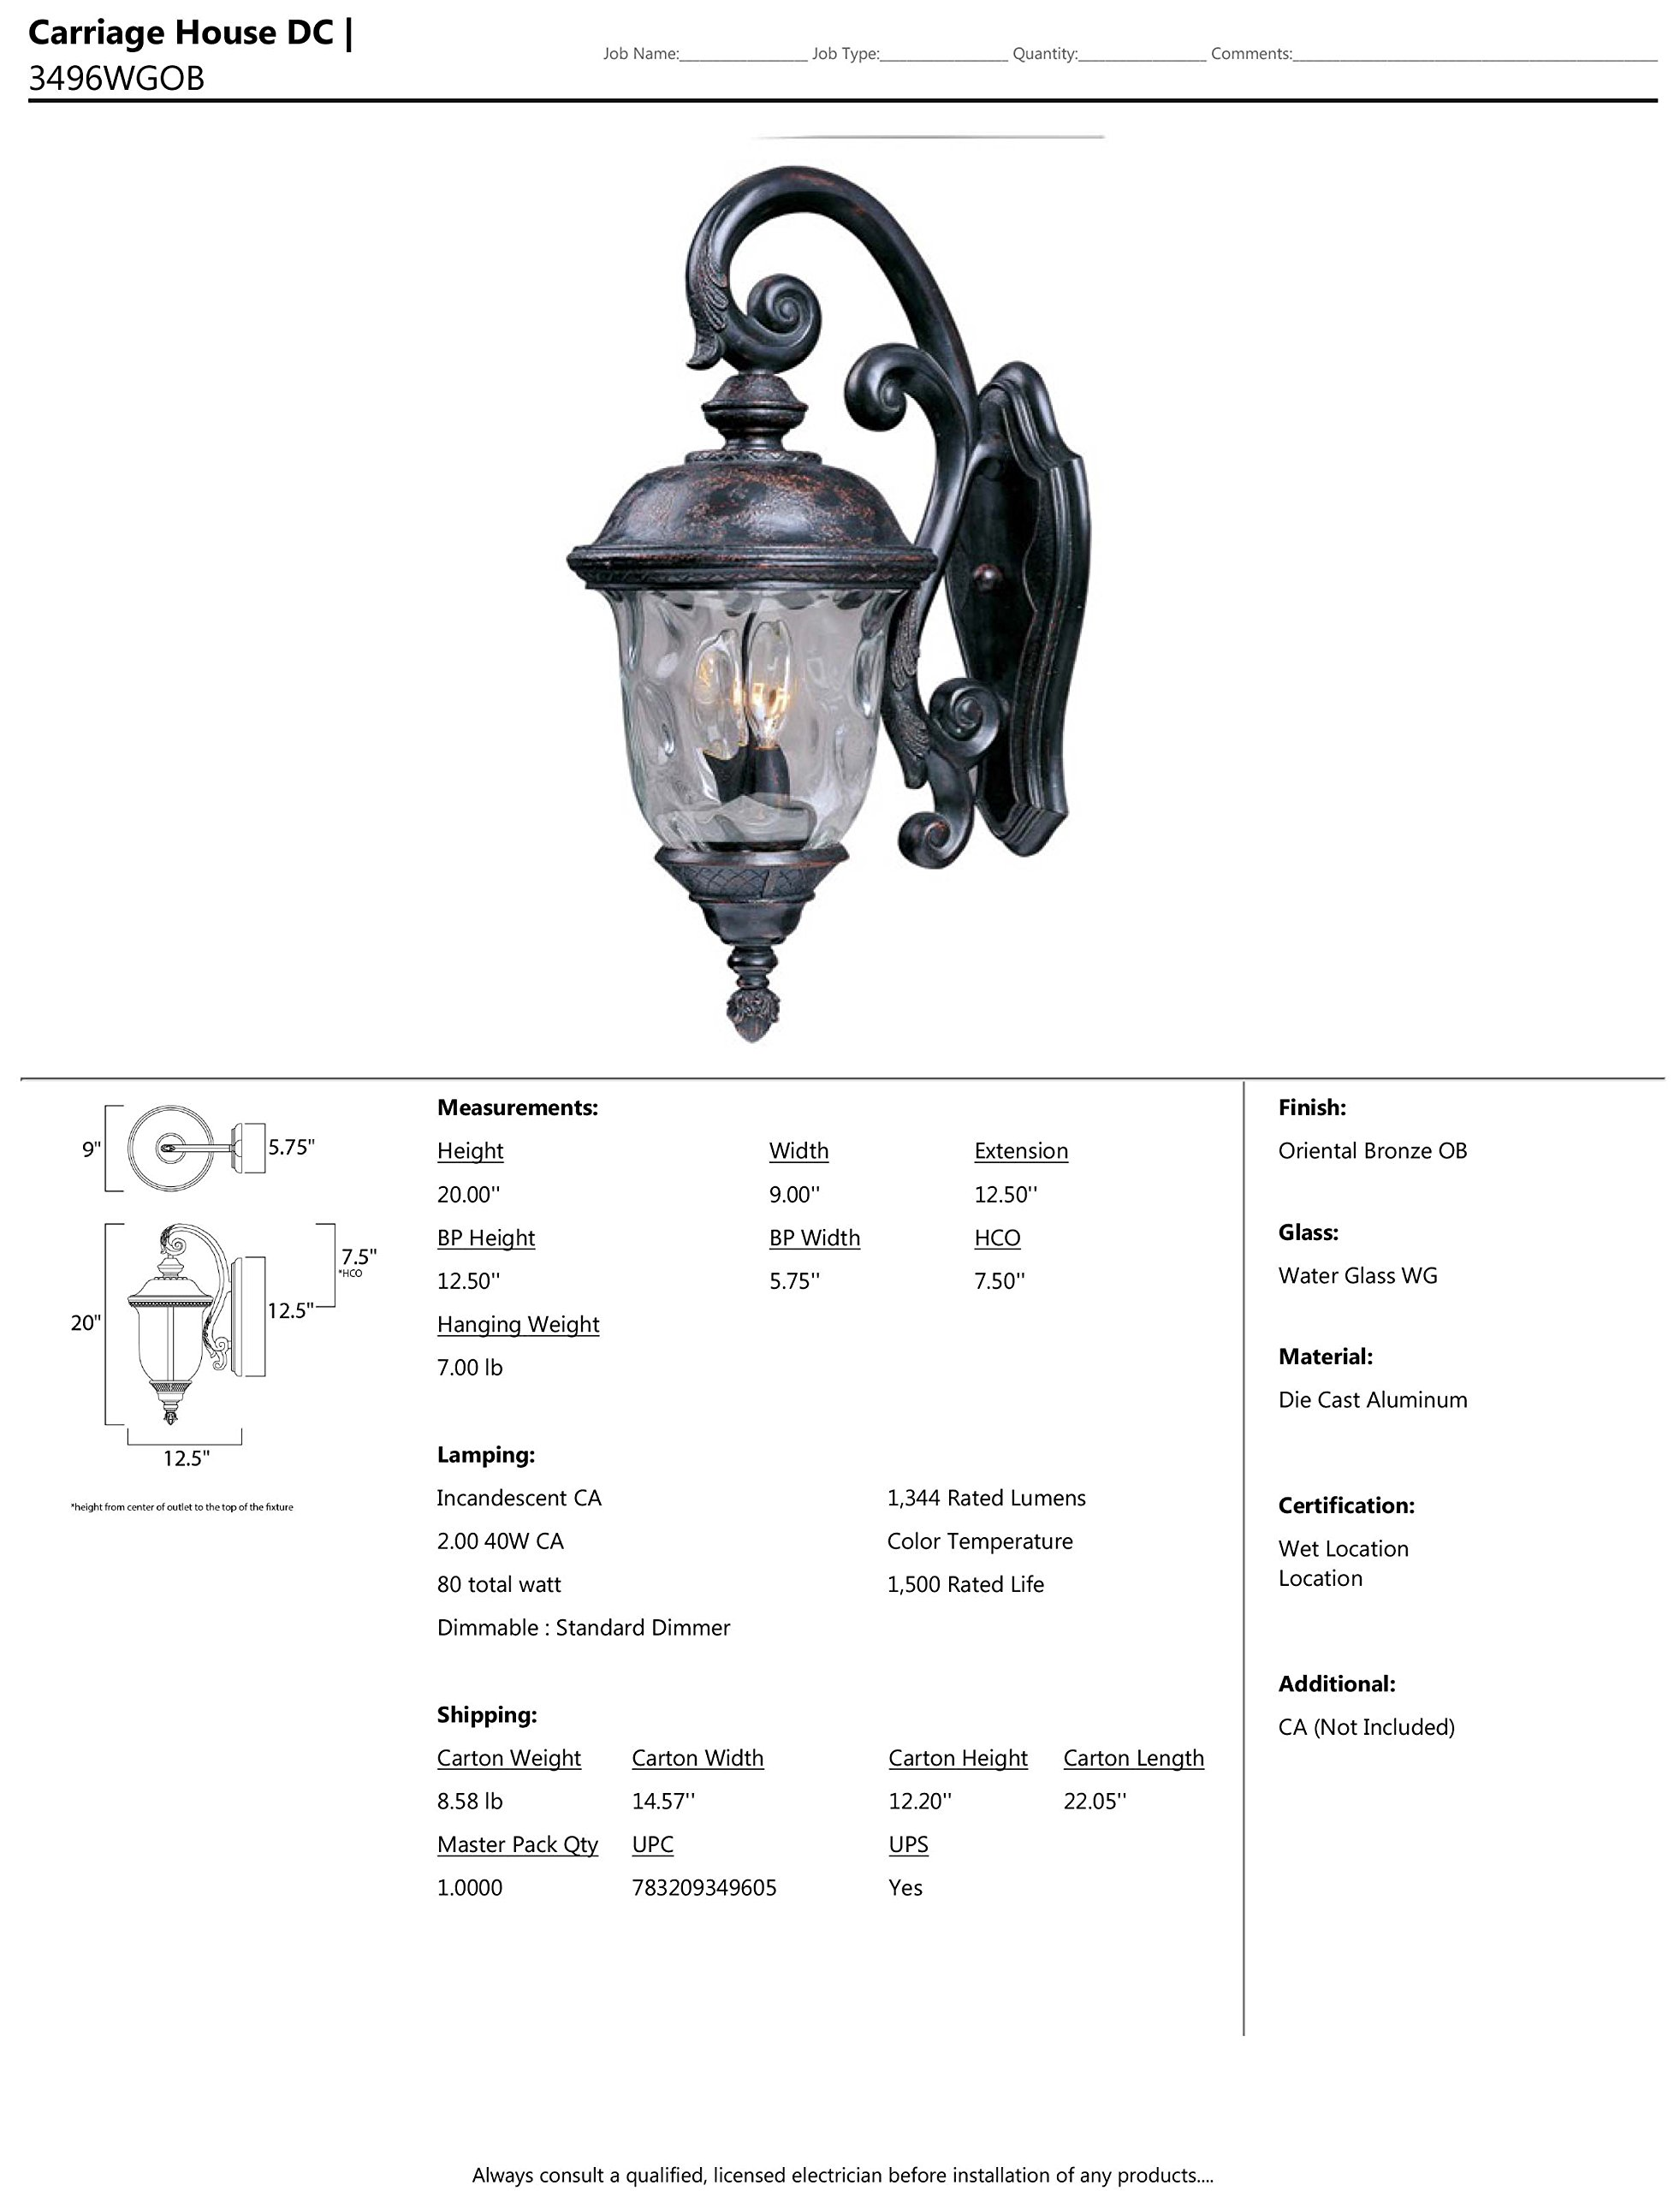 Maxim Lighting 3496WGOB Carriage House DC 2-Light Top Mount Outdoor 20-Inch Wall Lantern, Oriental Bronze Finish - Finish: oriental Bronze Glass finish: water glass Bulb Type: Ca incandescent - patio, outdoor-lights, outdoor-decor - 81Qc4l2q6dL -